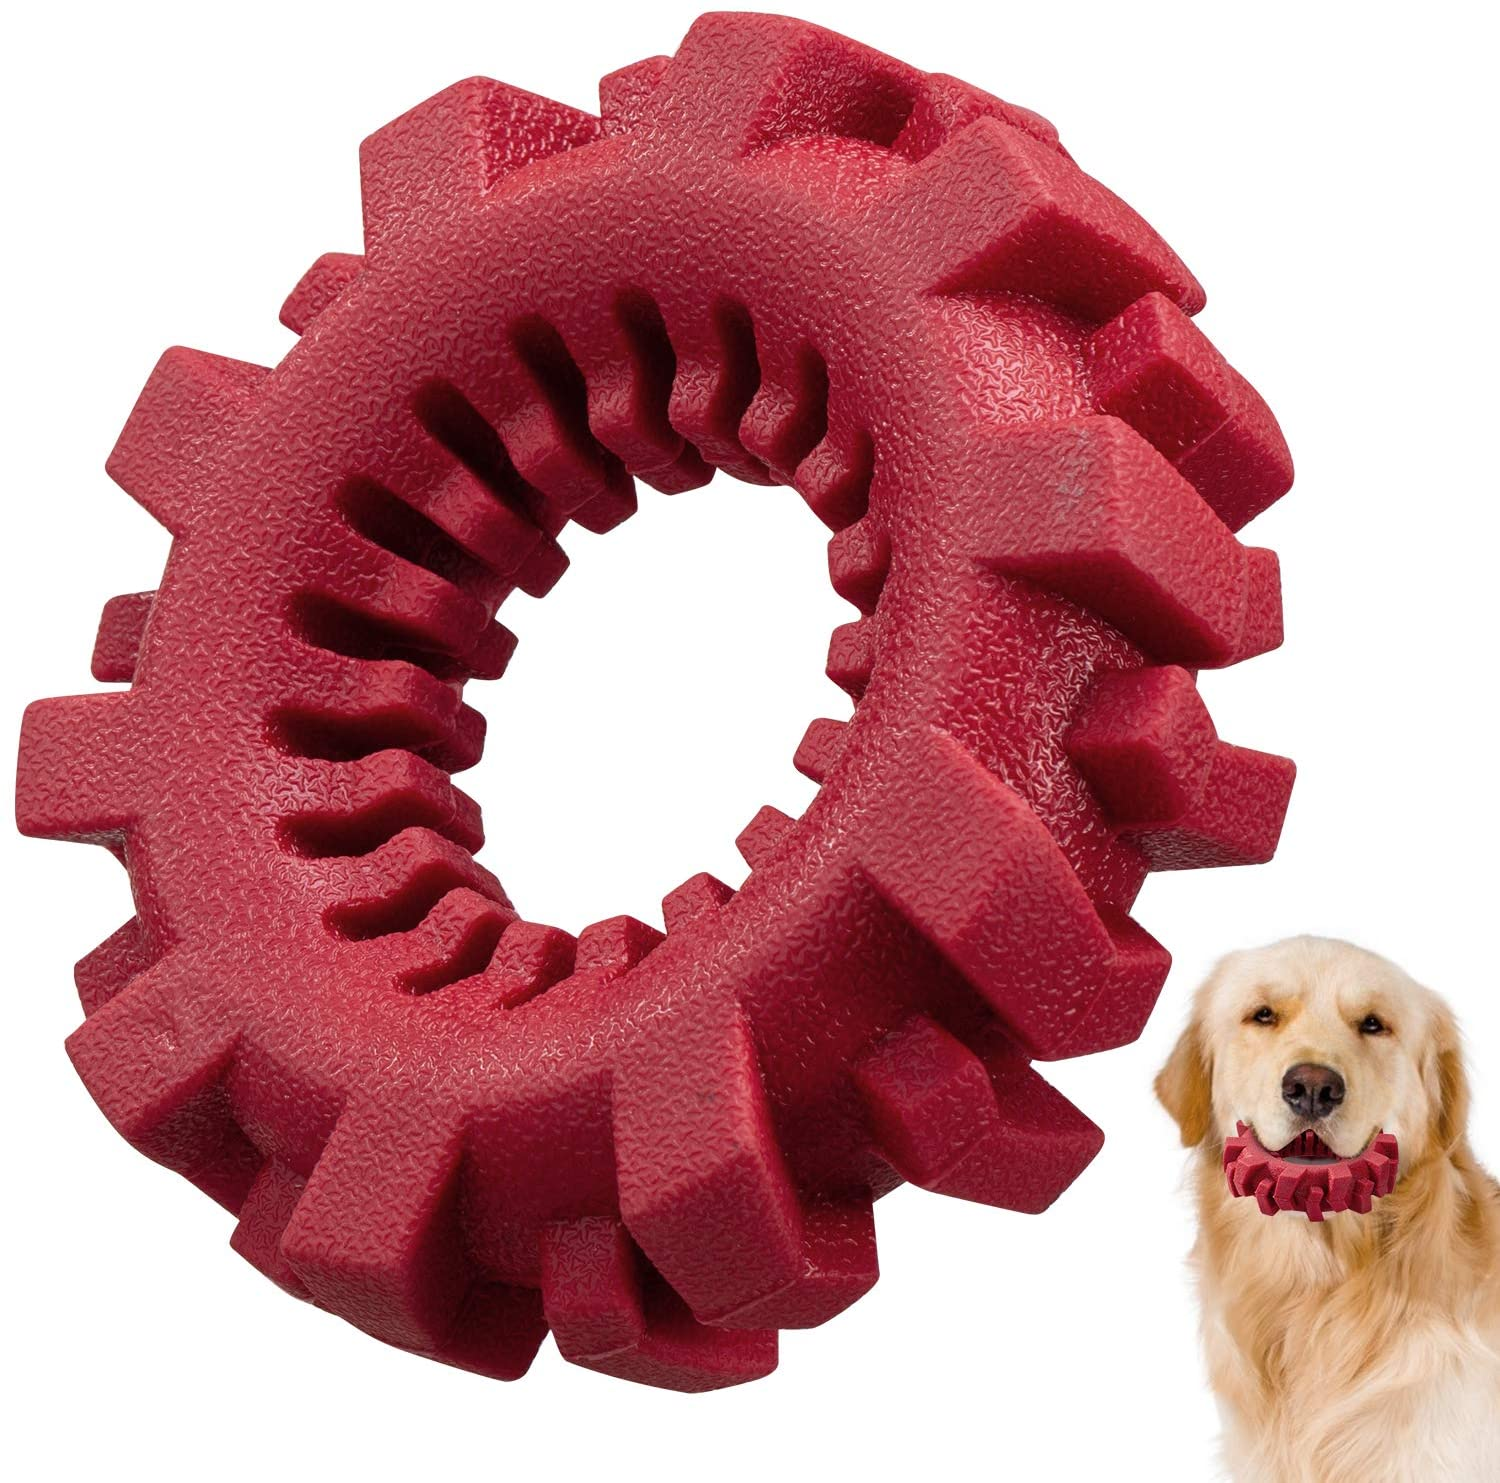 Dog Chew Toys, Tires Dog Chew Toy for Aggressive Chewers, Ultra-Tough Teeth Cleaning Toys for Small/Medium/Large Dog, Durable Tires Dog Toy for Playing, Training, Teething. �